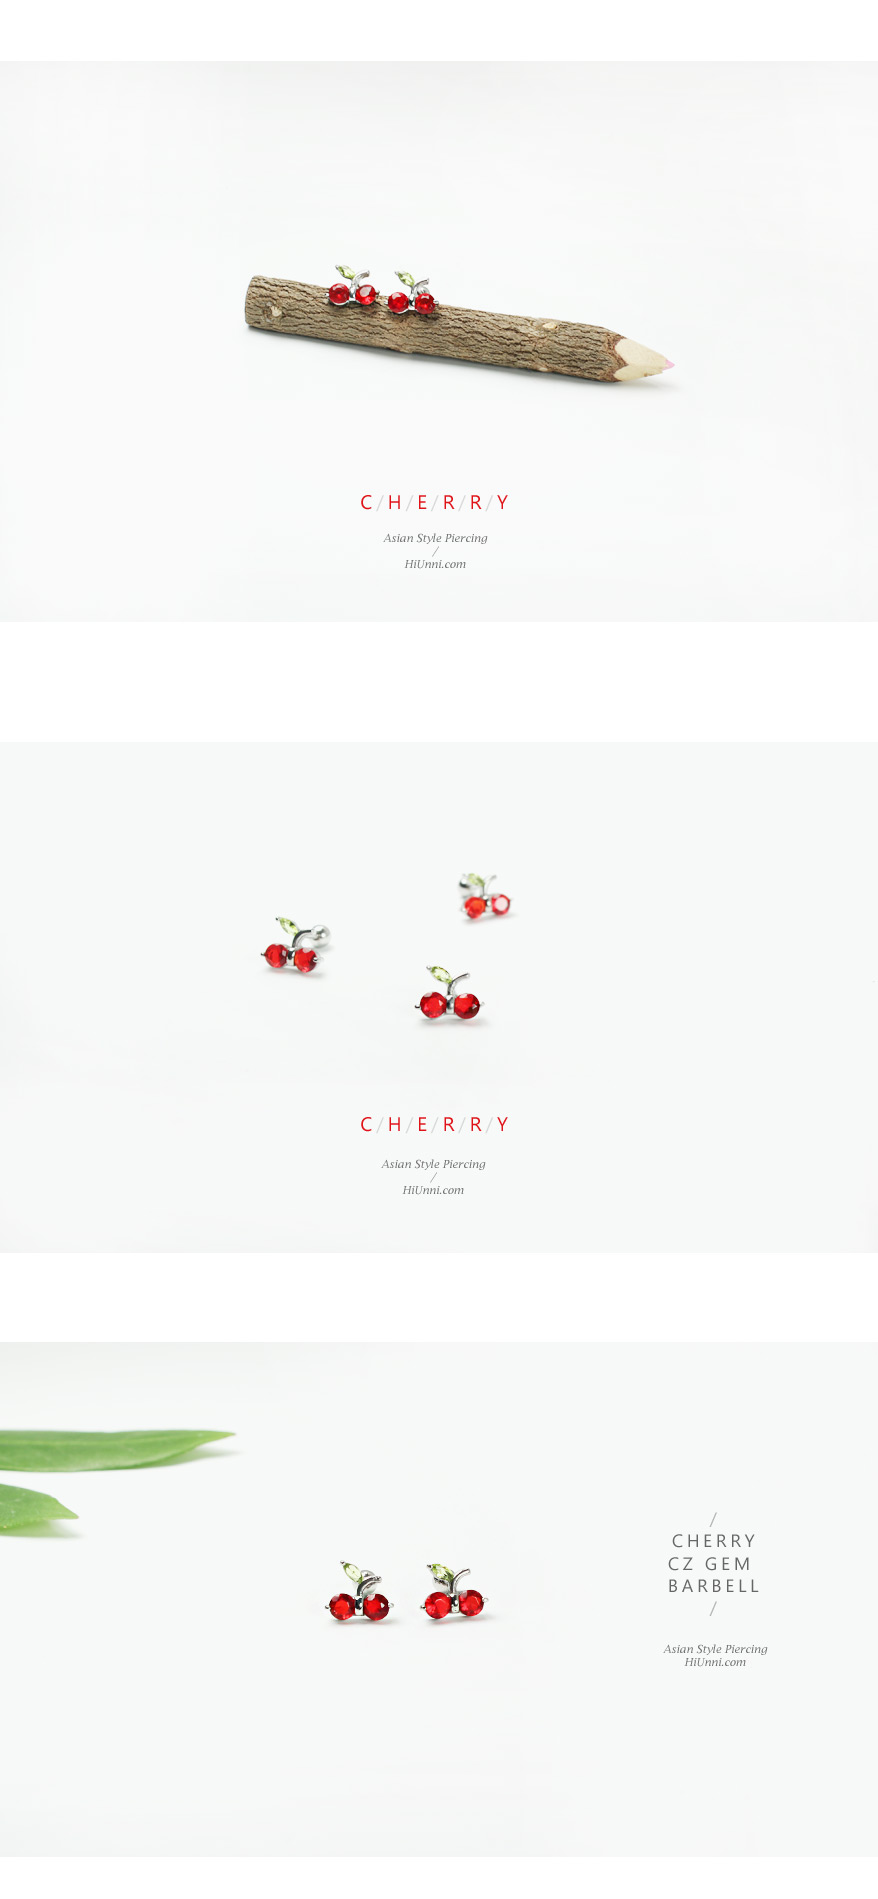 ear_studs_piercing_Cartilage_16g_316l_Stainless_Steel_earring_tragus_korean_asian_style_barbell_cherry_gem_cubic_cz_1